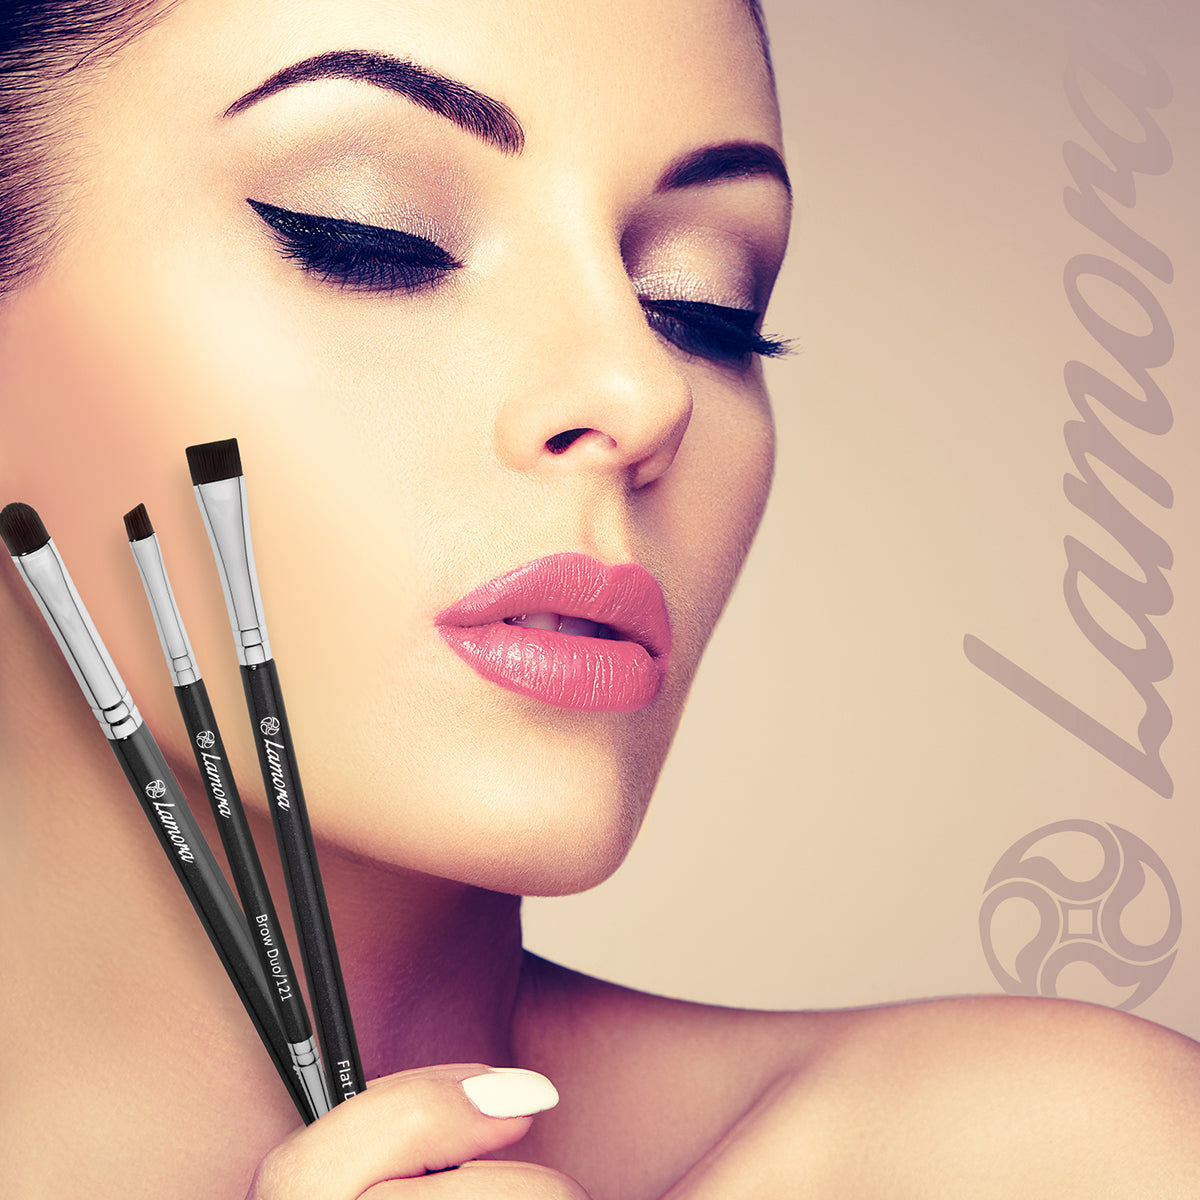 Beautiful woman holding brushes used to shape and color the eyebrow